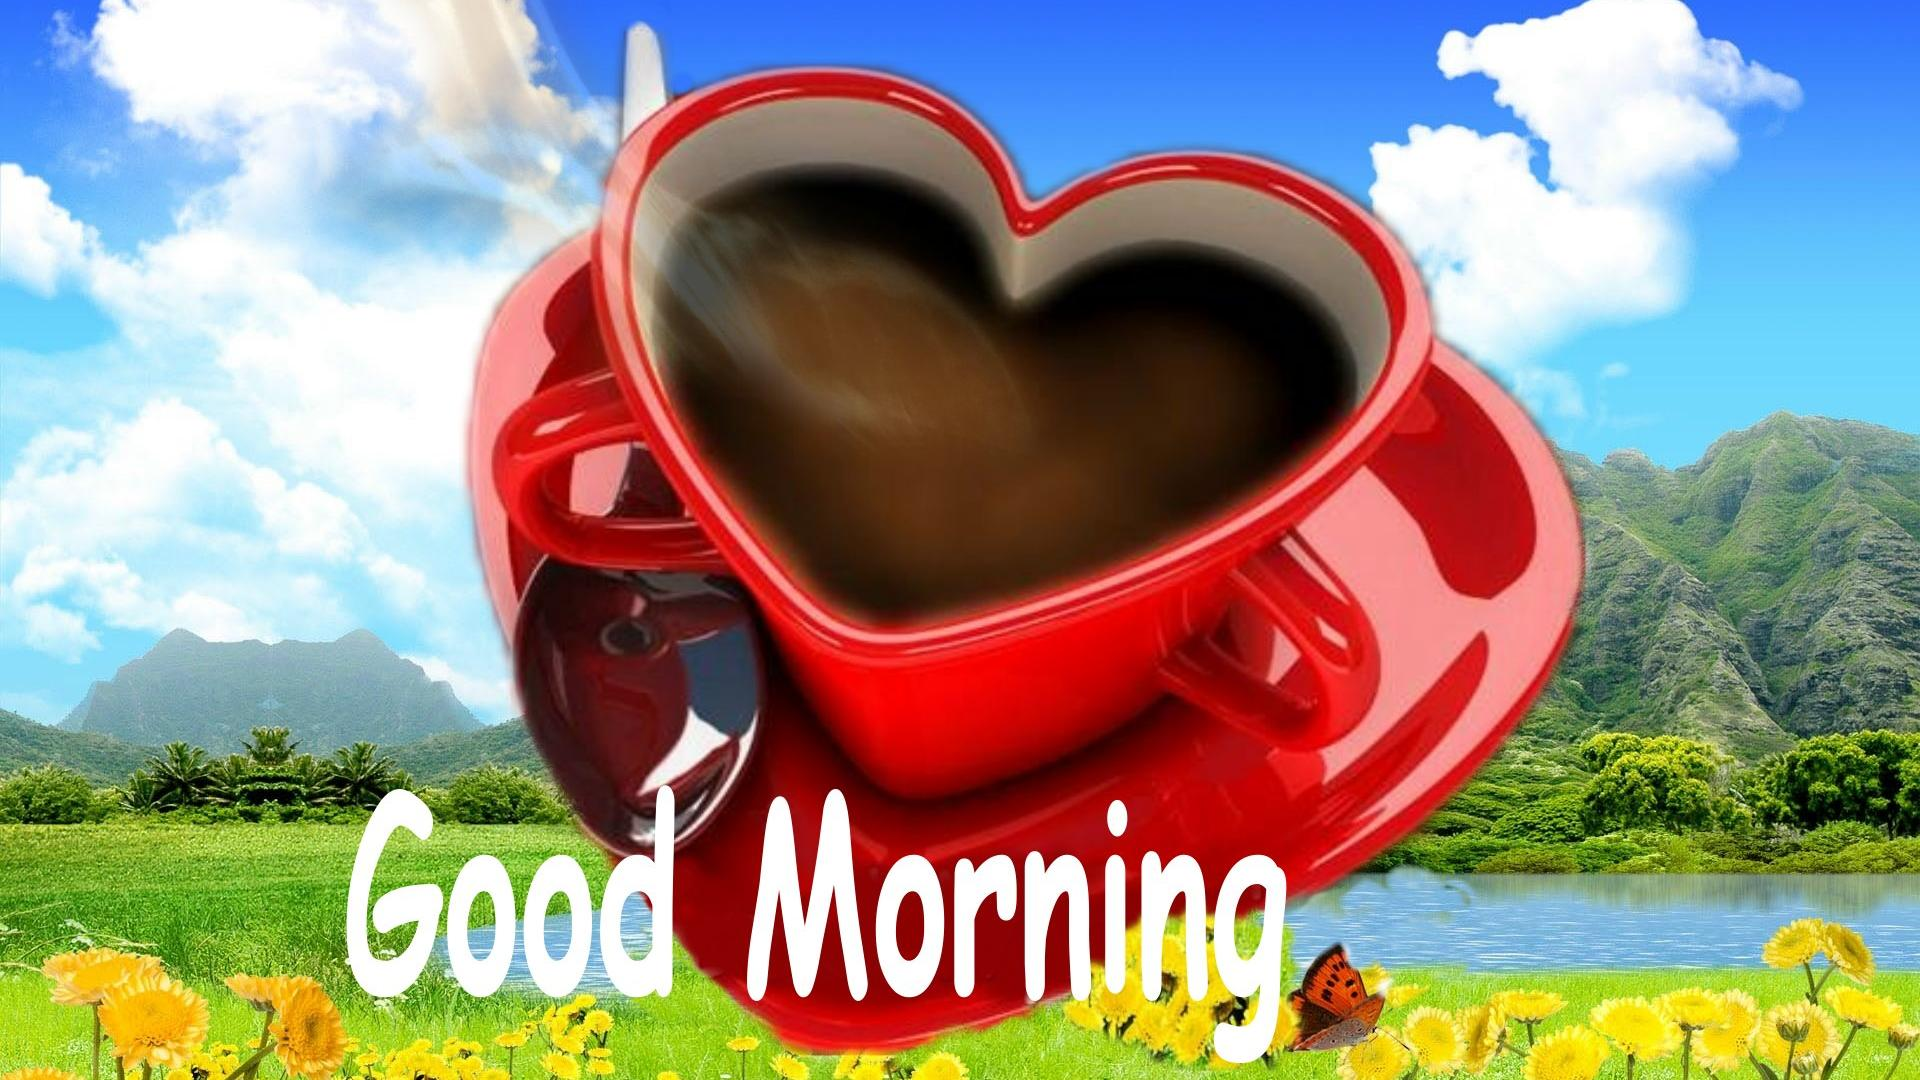 1920x1080px Good Morning Love Wallpaper Wallpapersafari